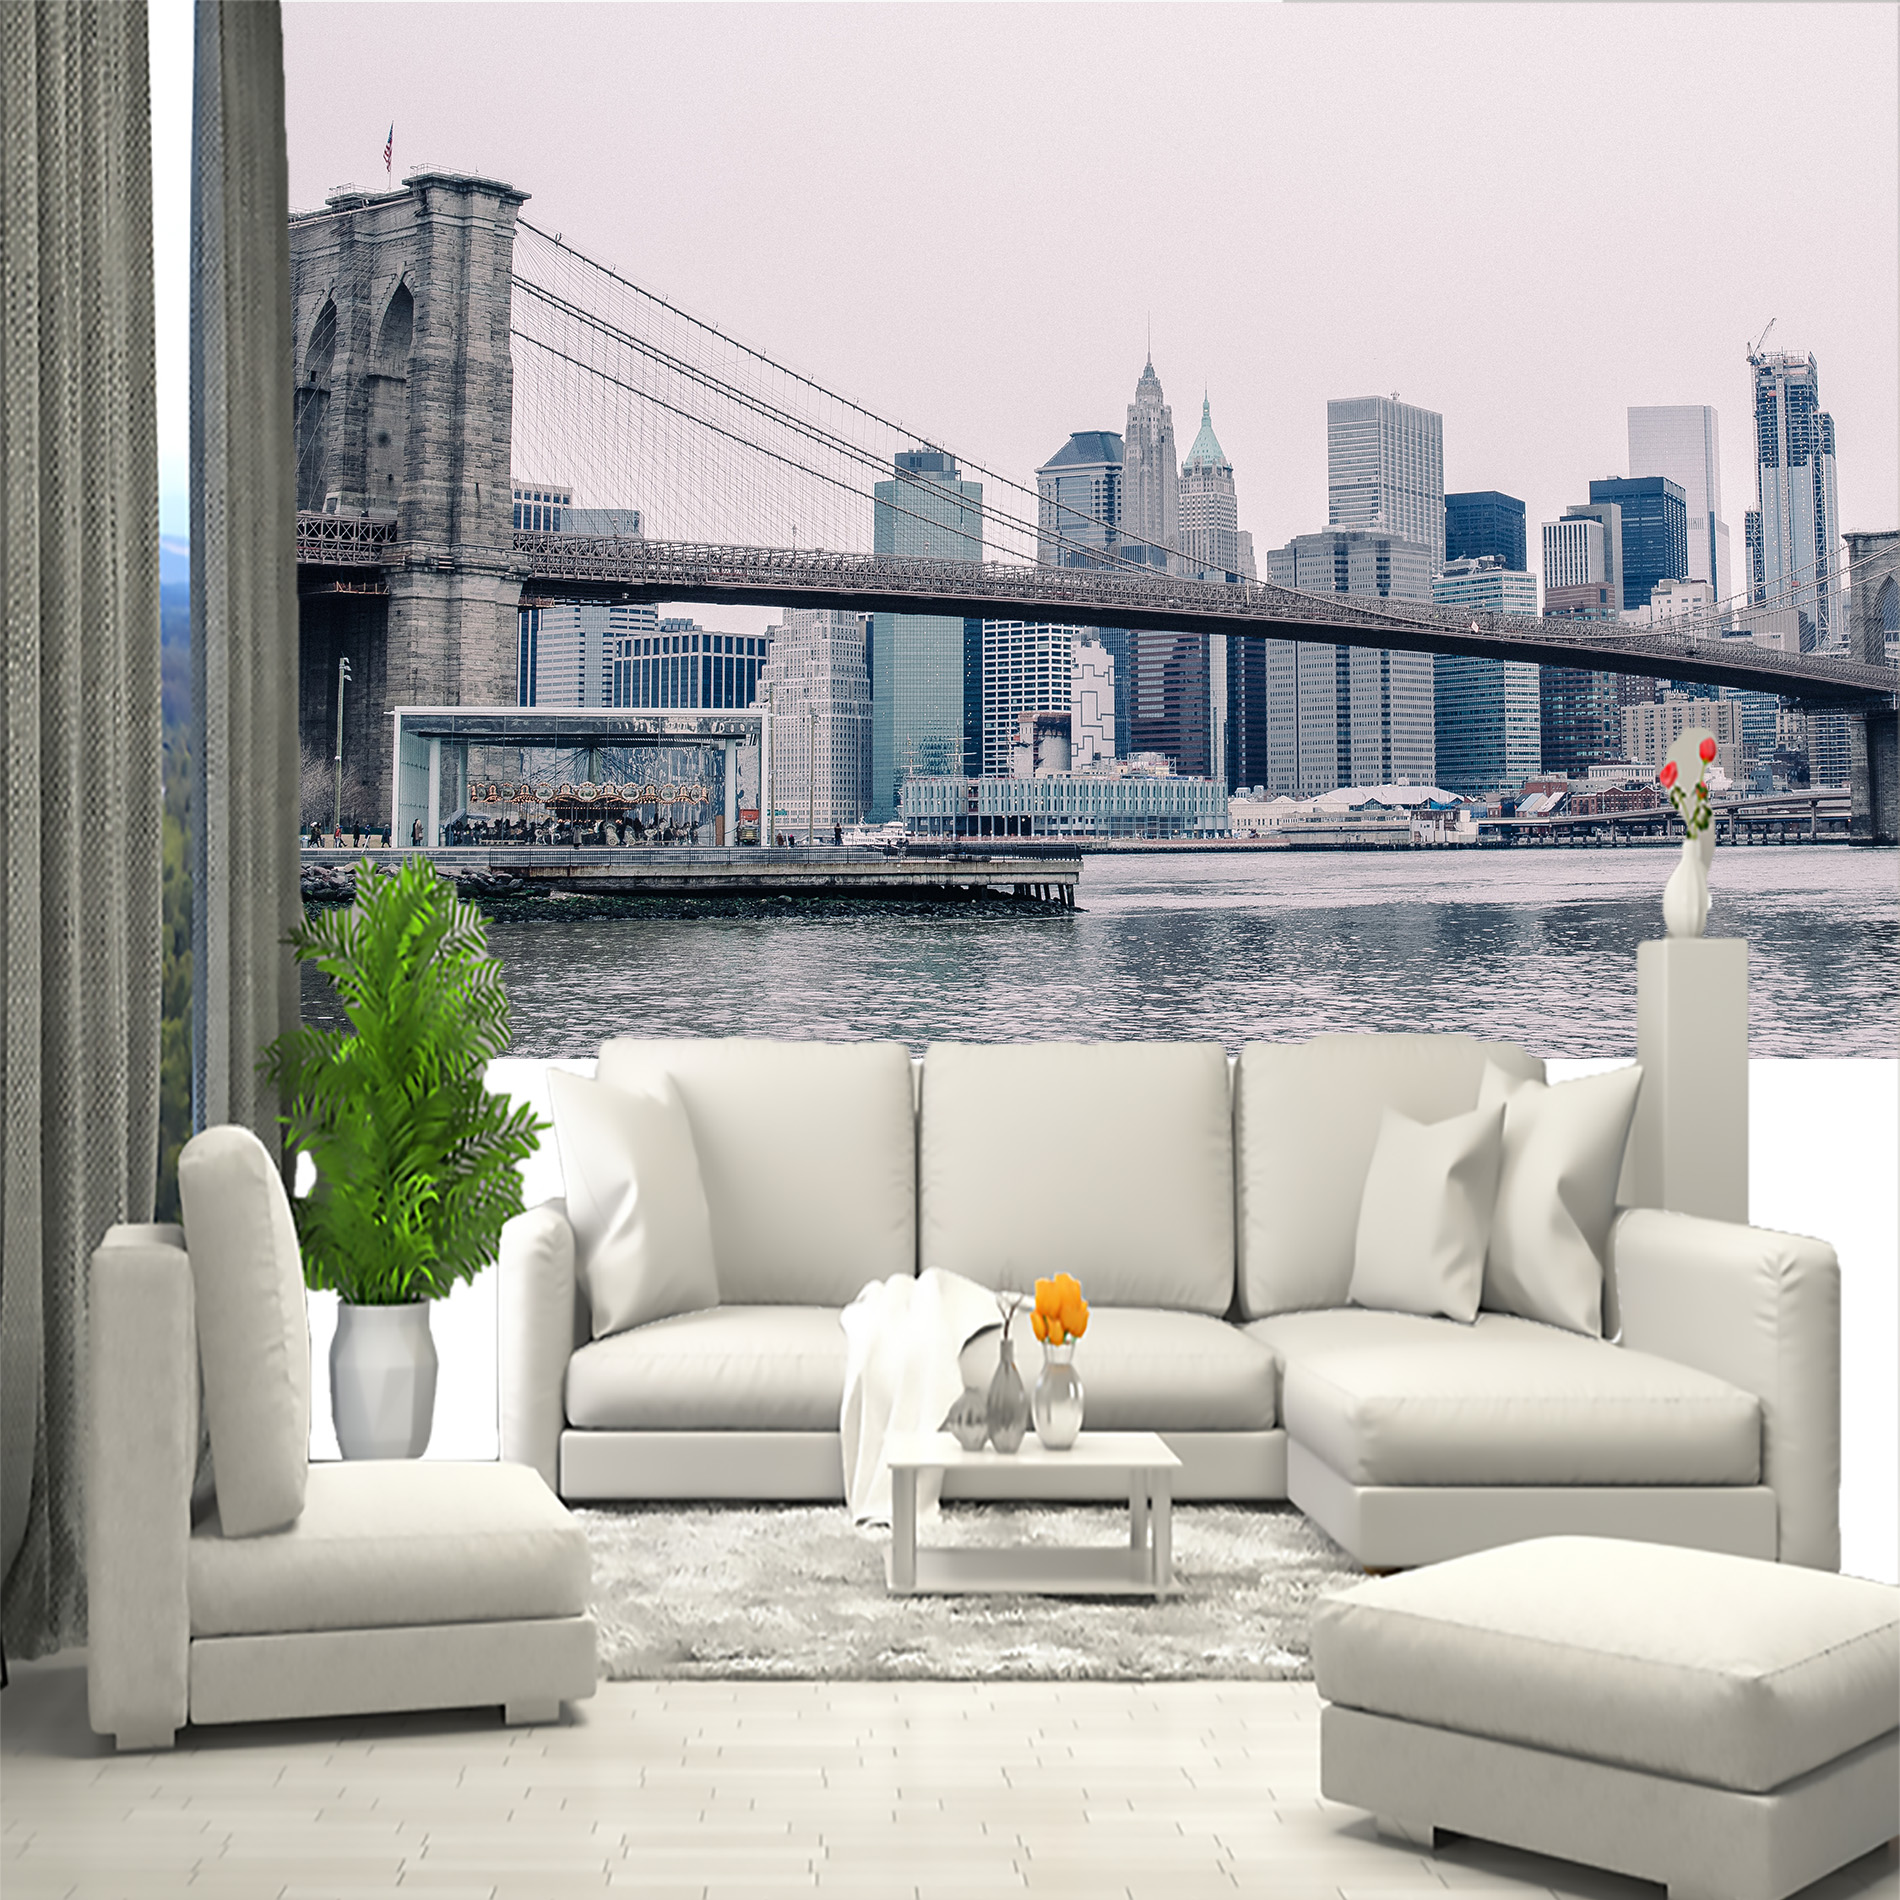 Photo Wallpaper City New York, Brooklyn Bridge. Stereoscopic Photo Wallpaper For Bedroom Room Home